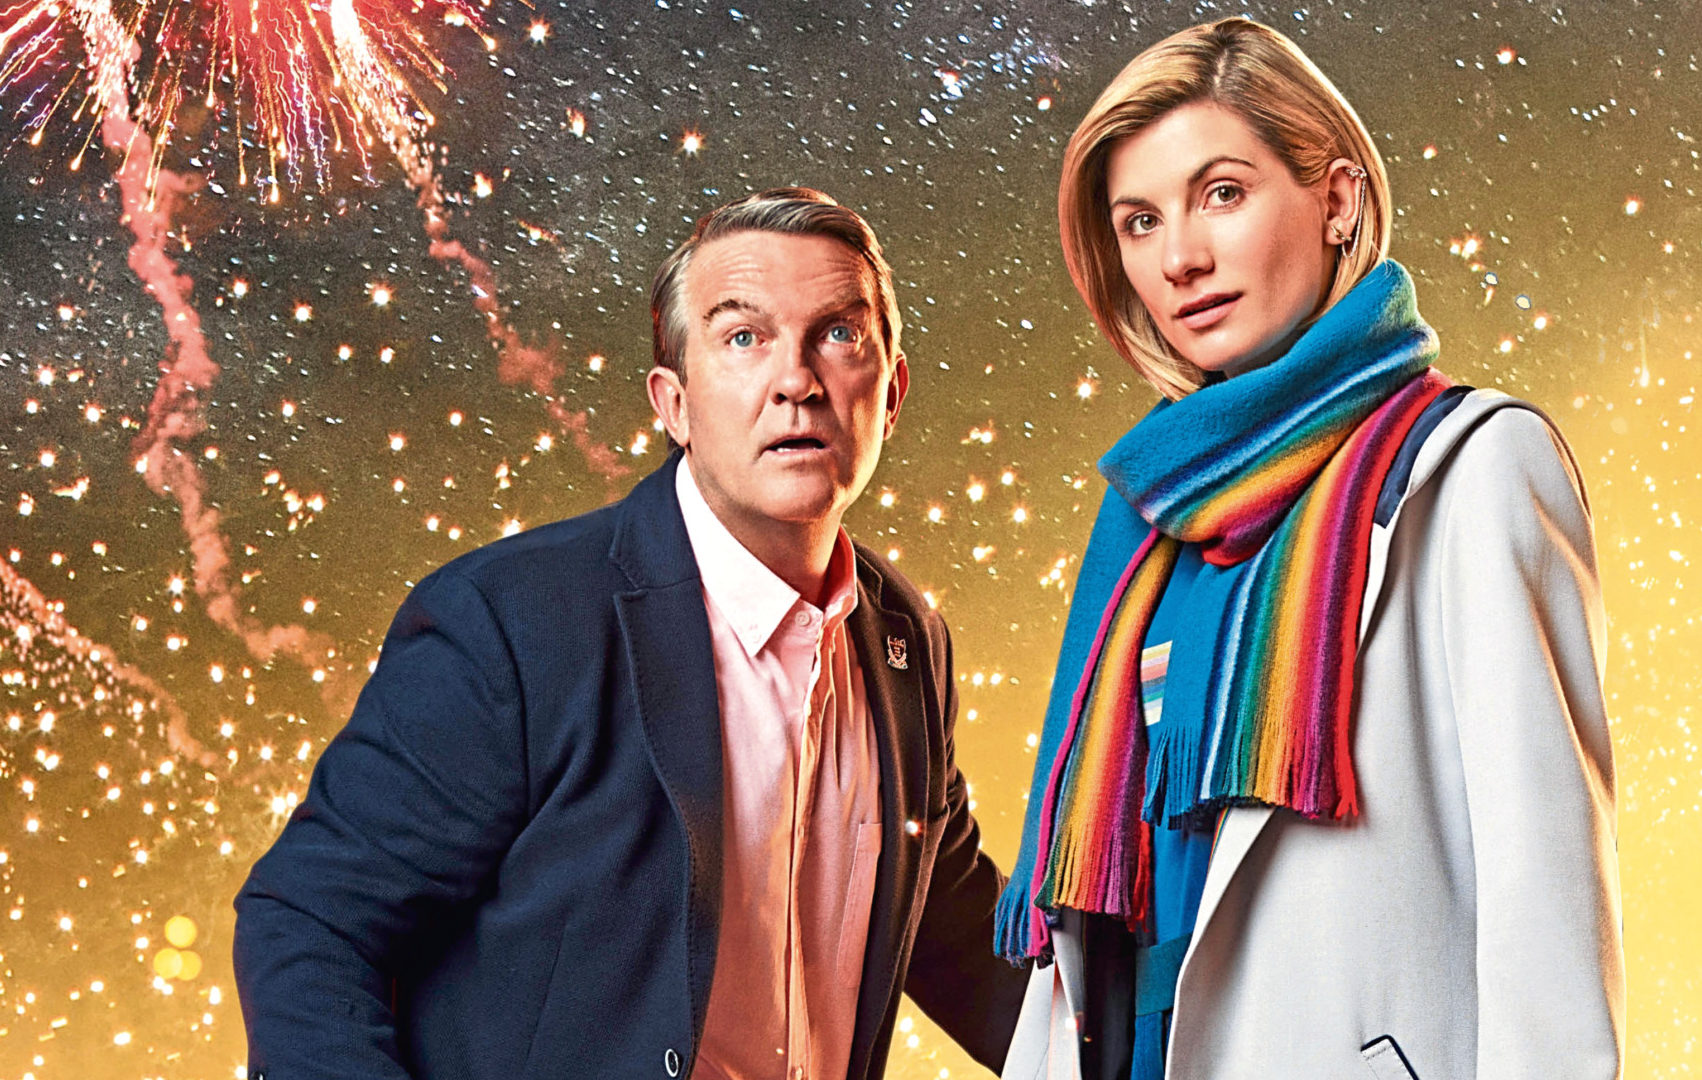 Bradley Walsh and Jodie Whittaker in Doctor Who (BBC / BBC Studios / Henrik Knudsen)